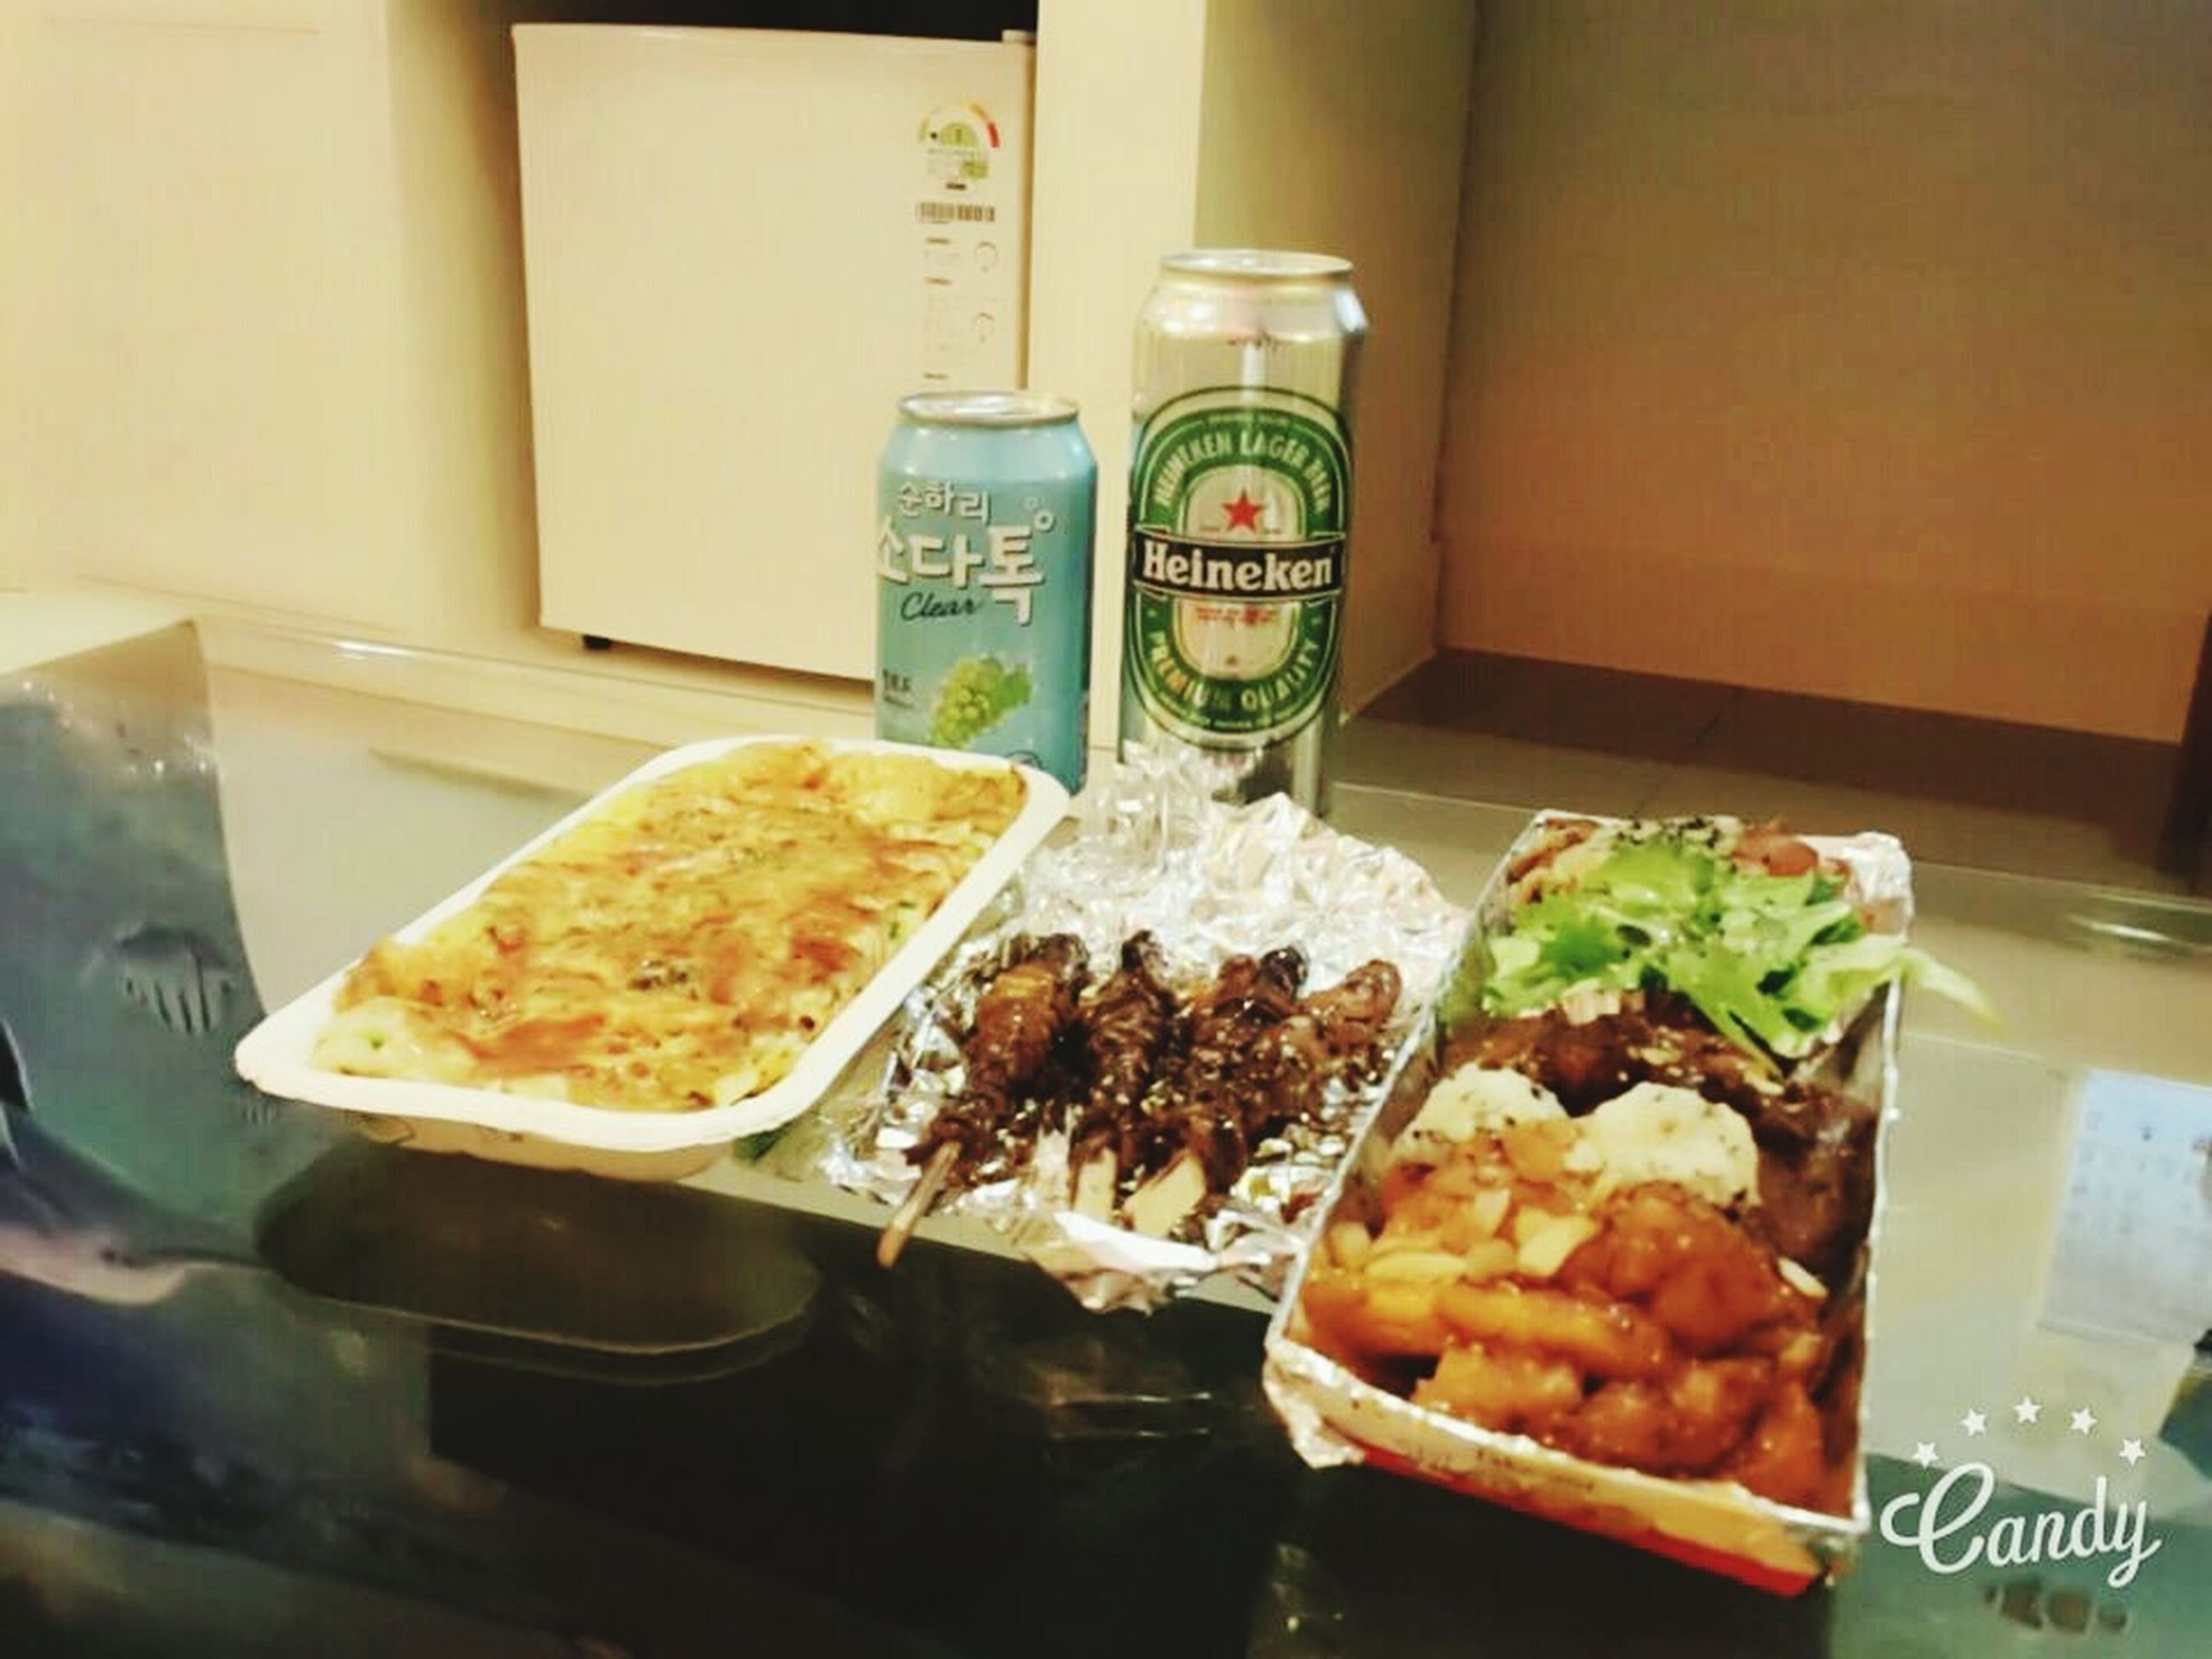 ready-to-eat, food and drink, indoors, food, fast food, freshness, no people, unhealthy eating, serving size, table, plate, snack, close-up, day